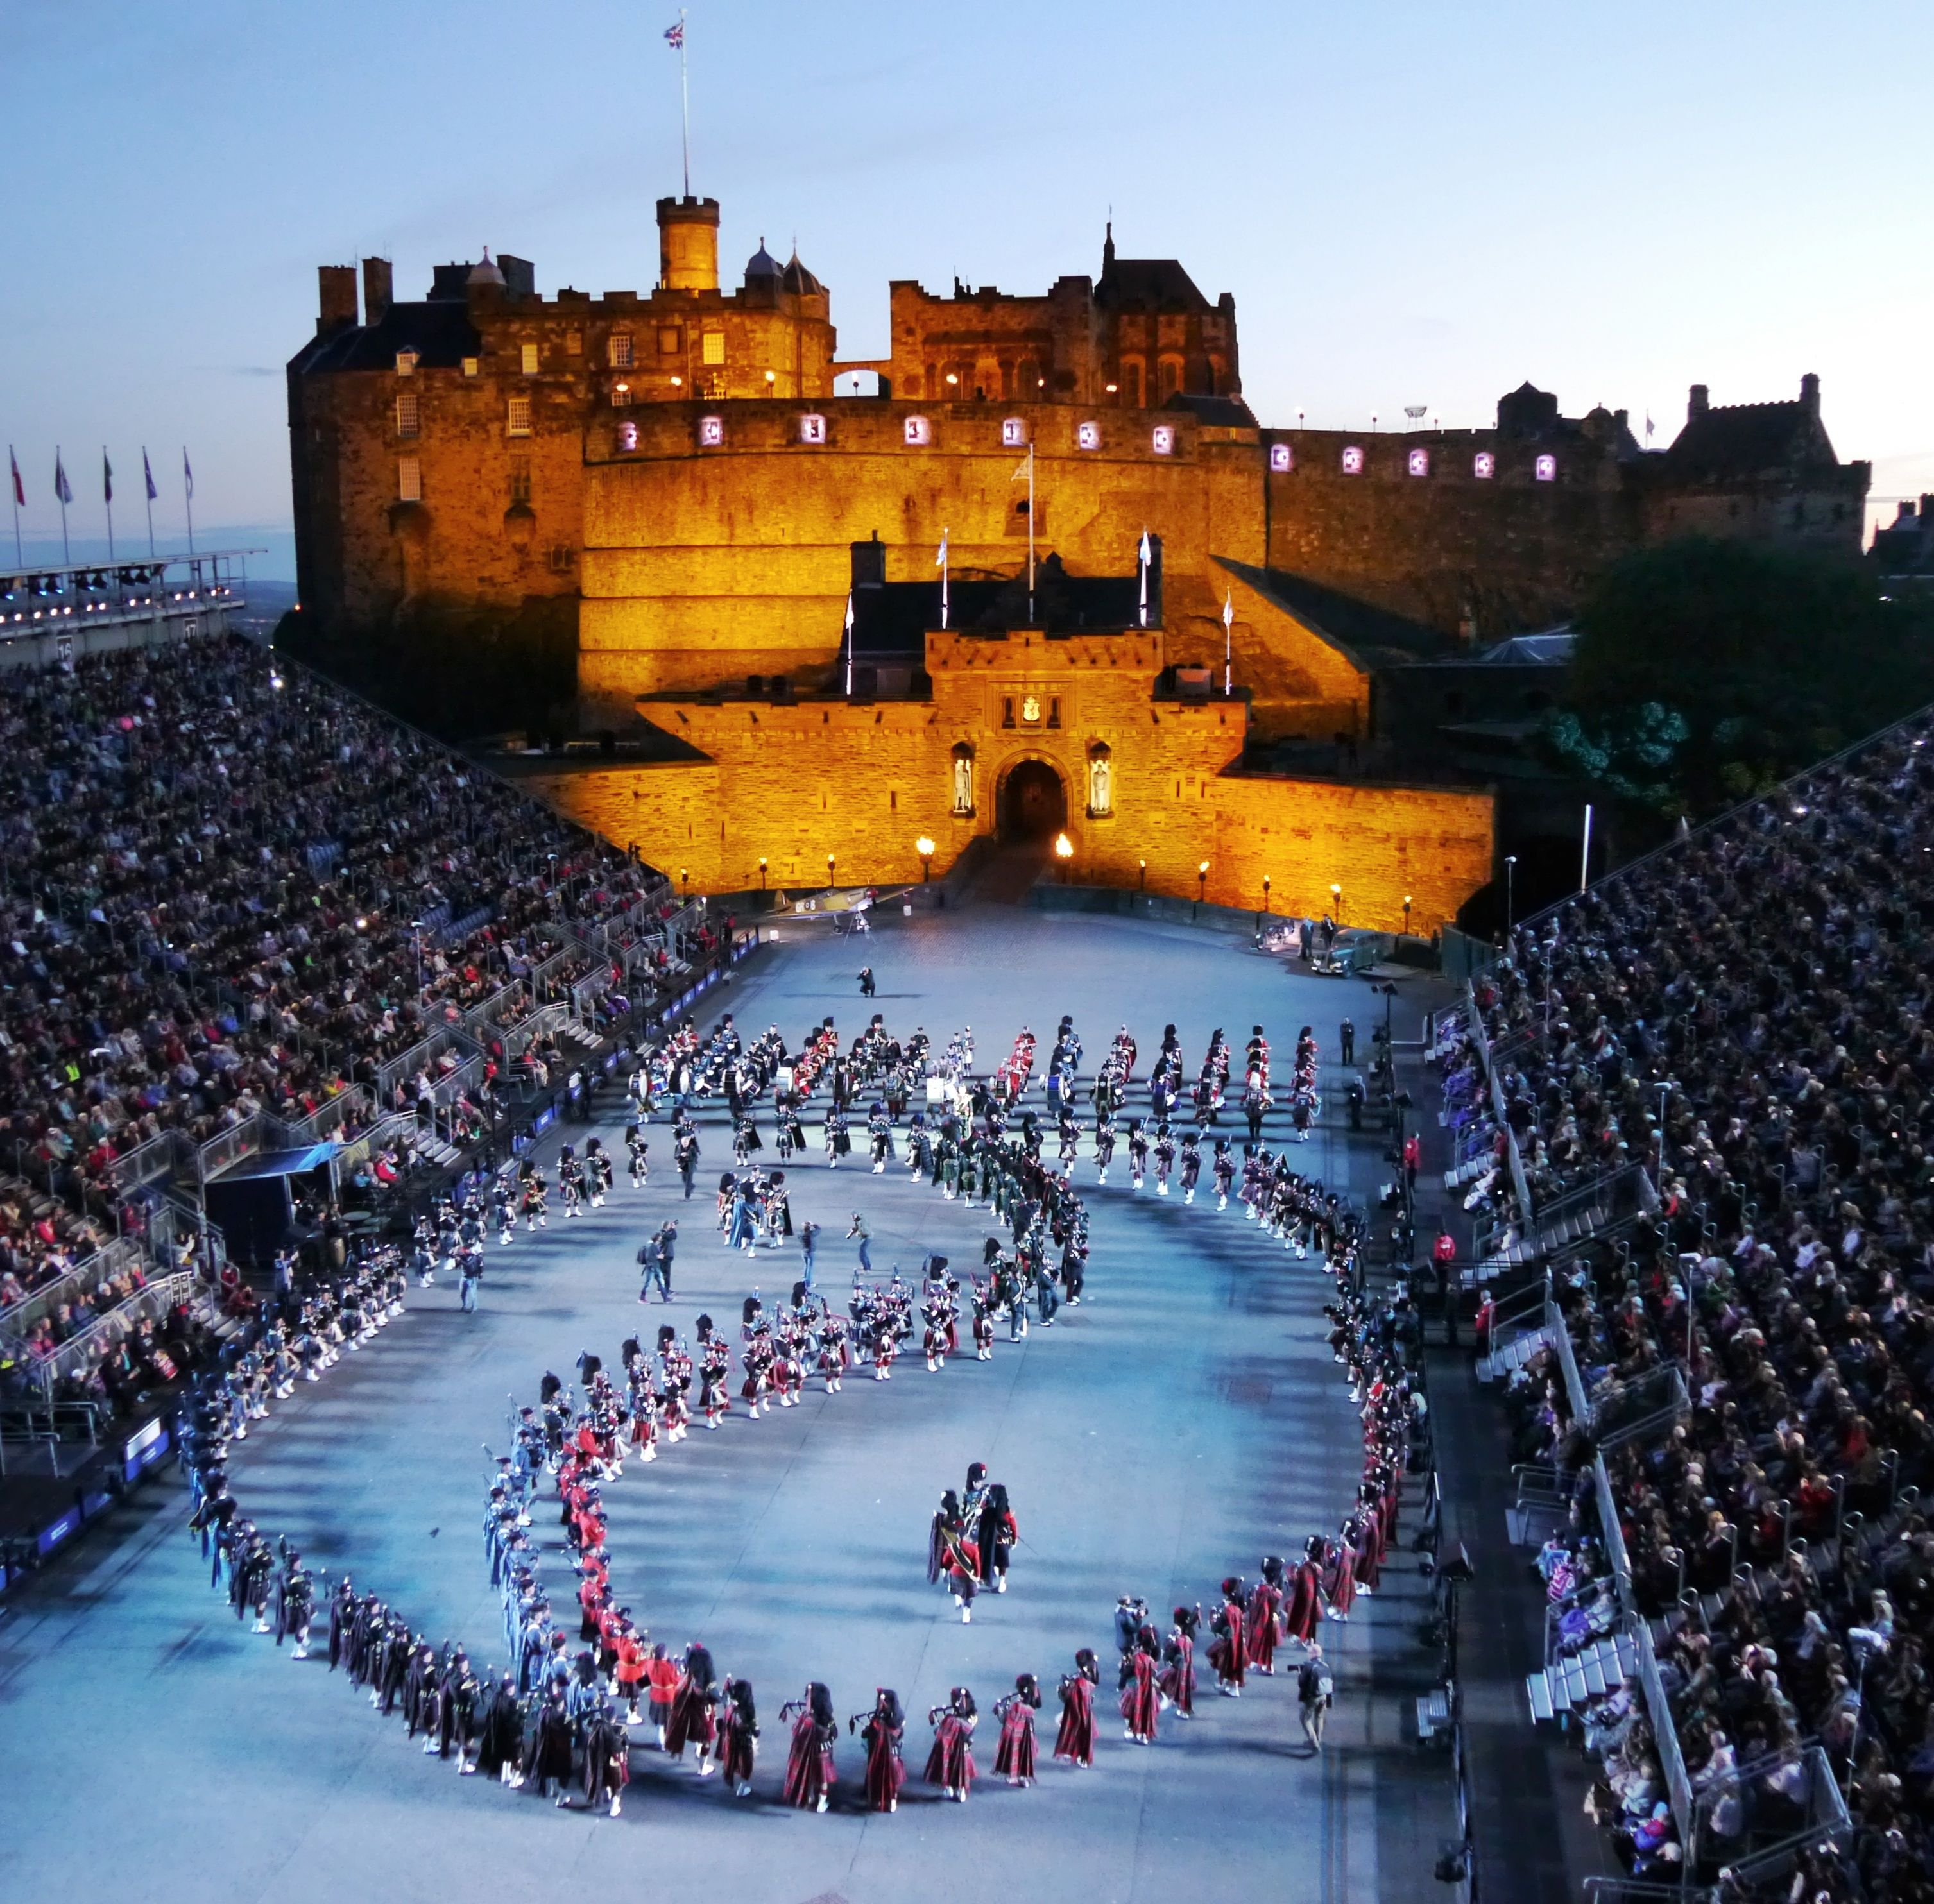 Edinburgh photos the royal edinburgh military tattoo for Royal edinburgh military tattoo